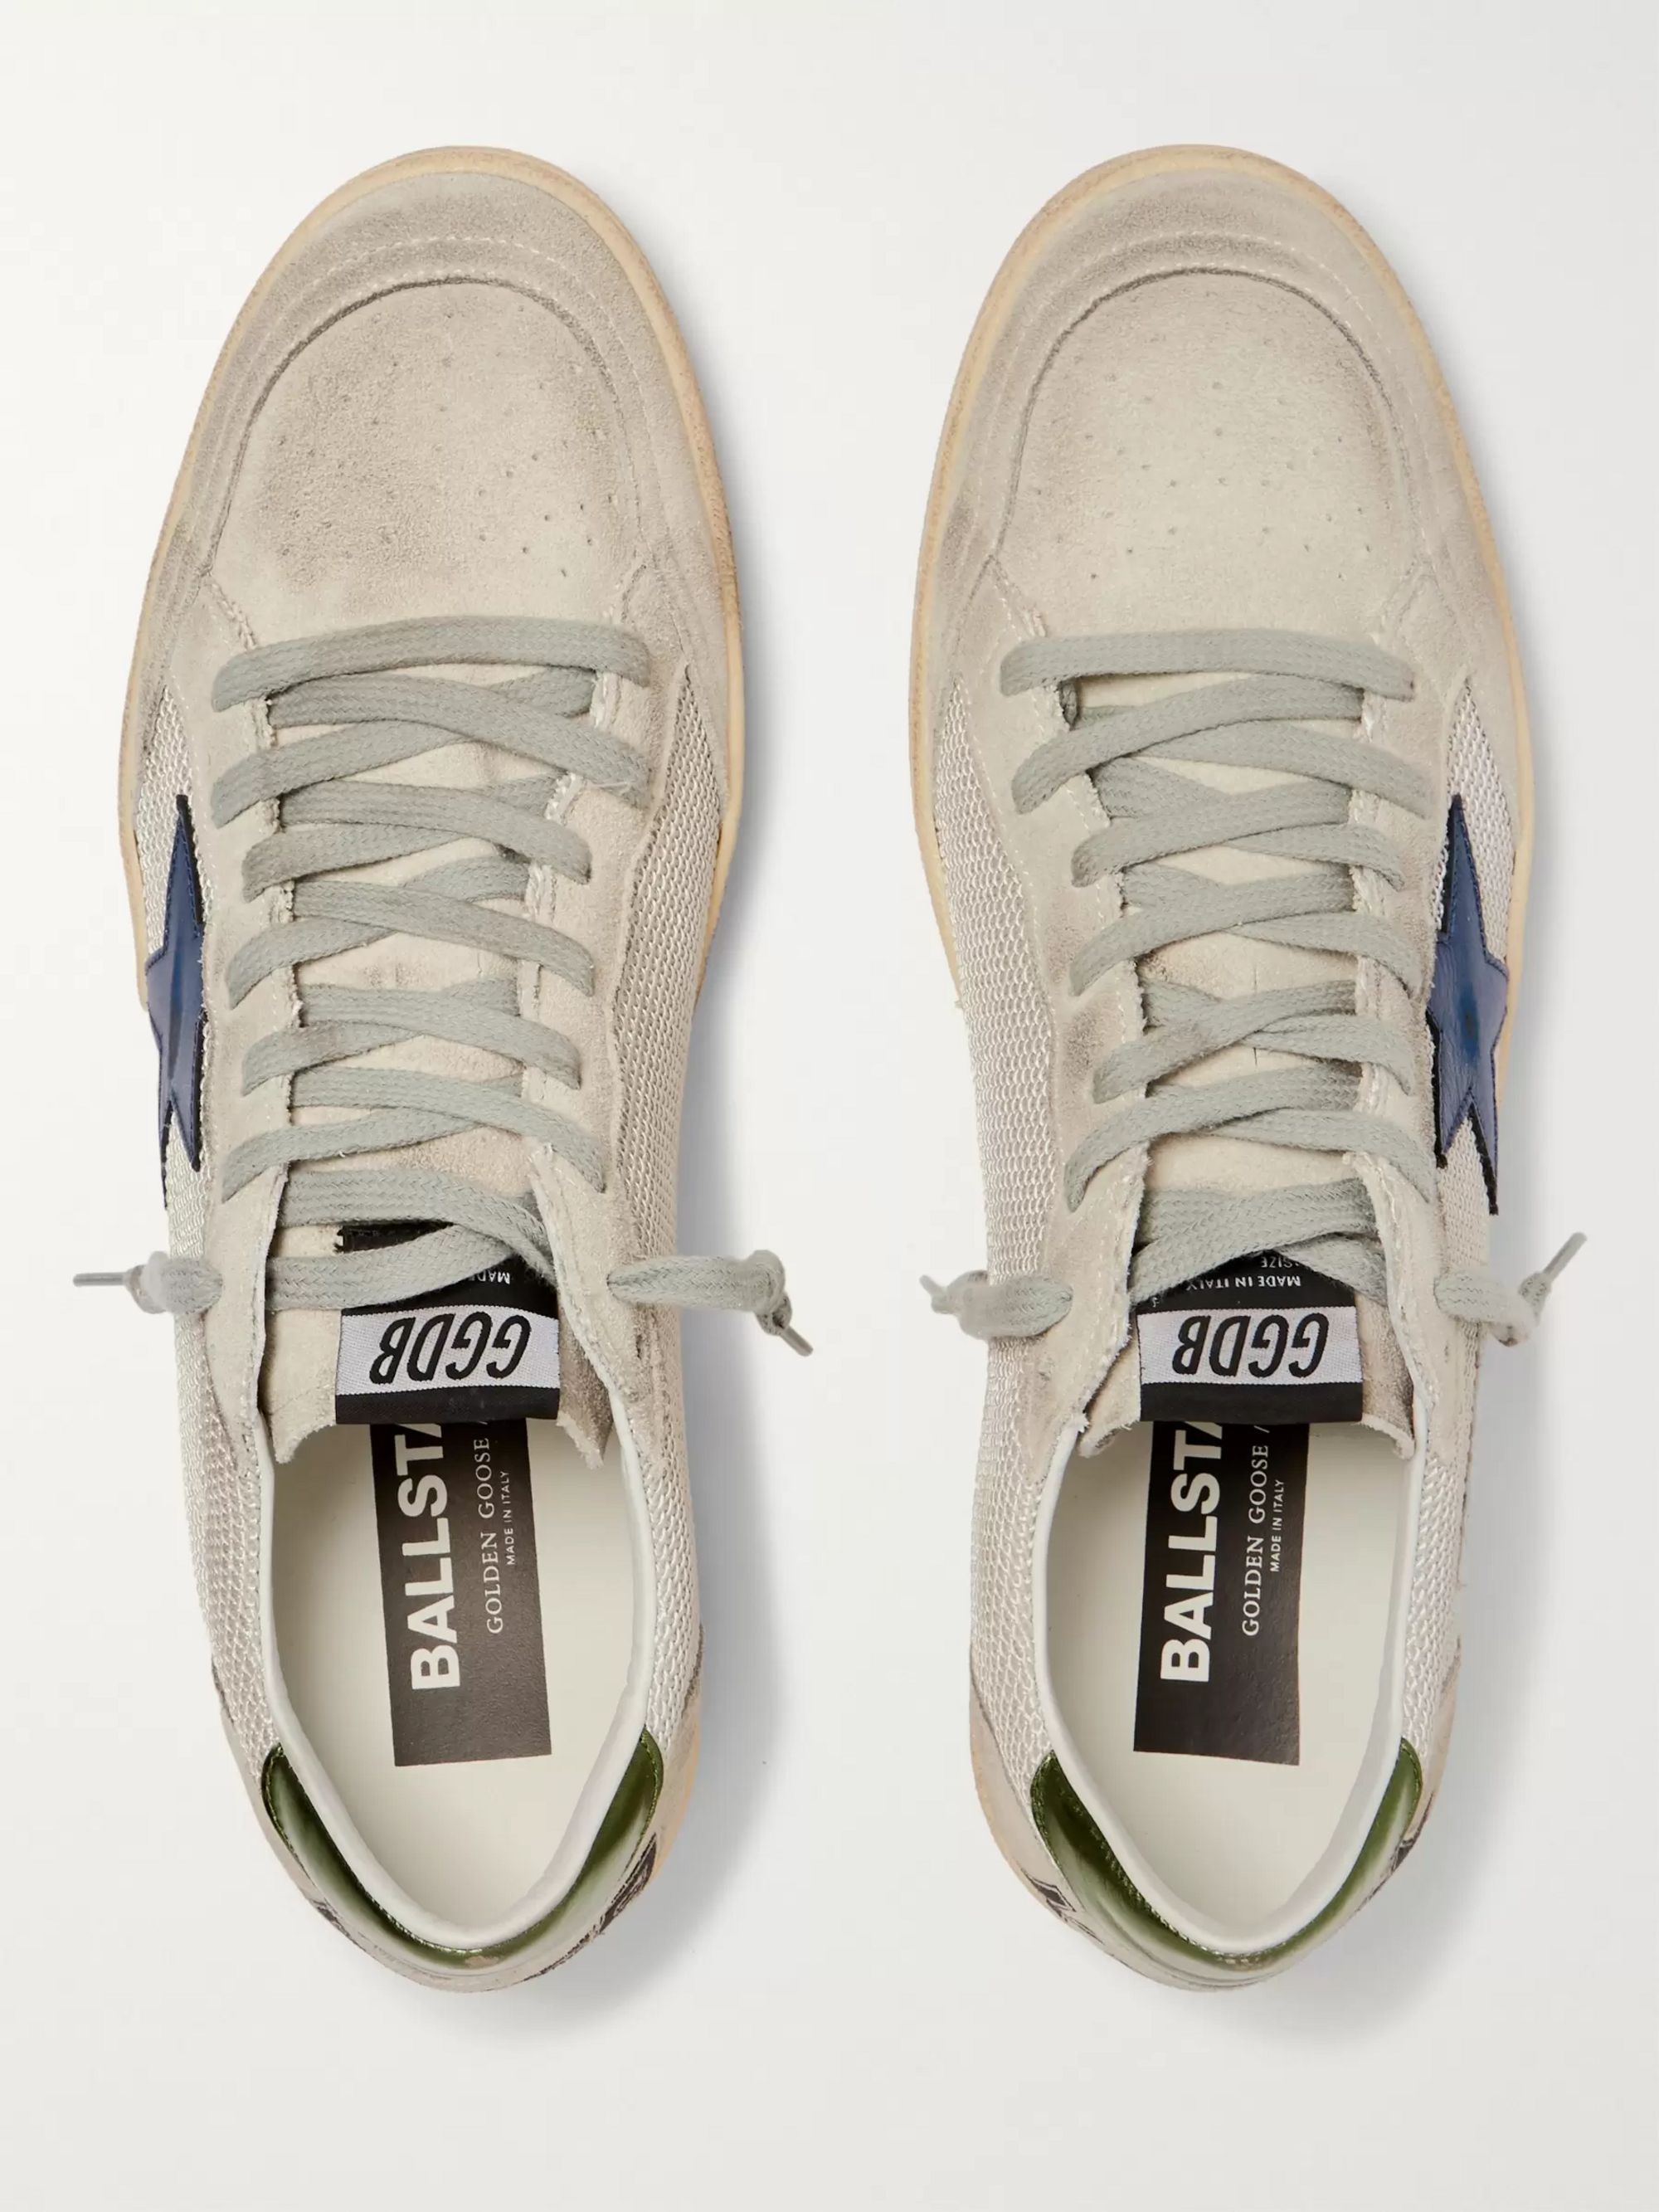 Golden Goose Ball Star Distressed Suede, Mesh and Leather Sneakers